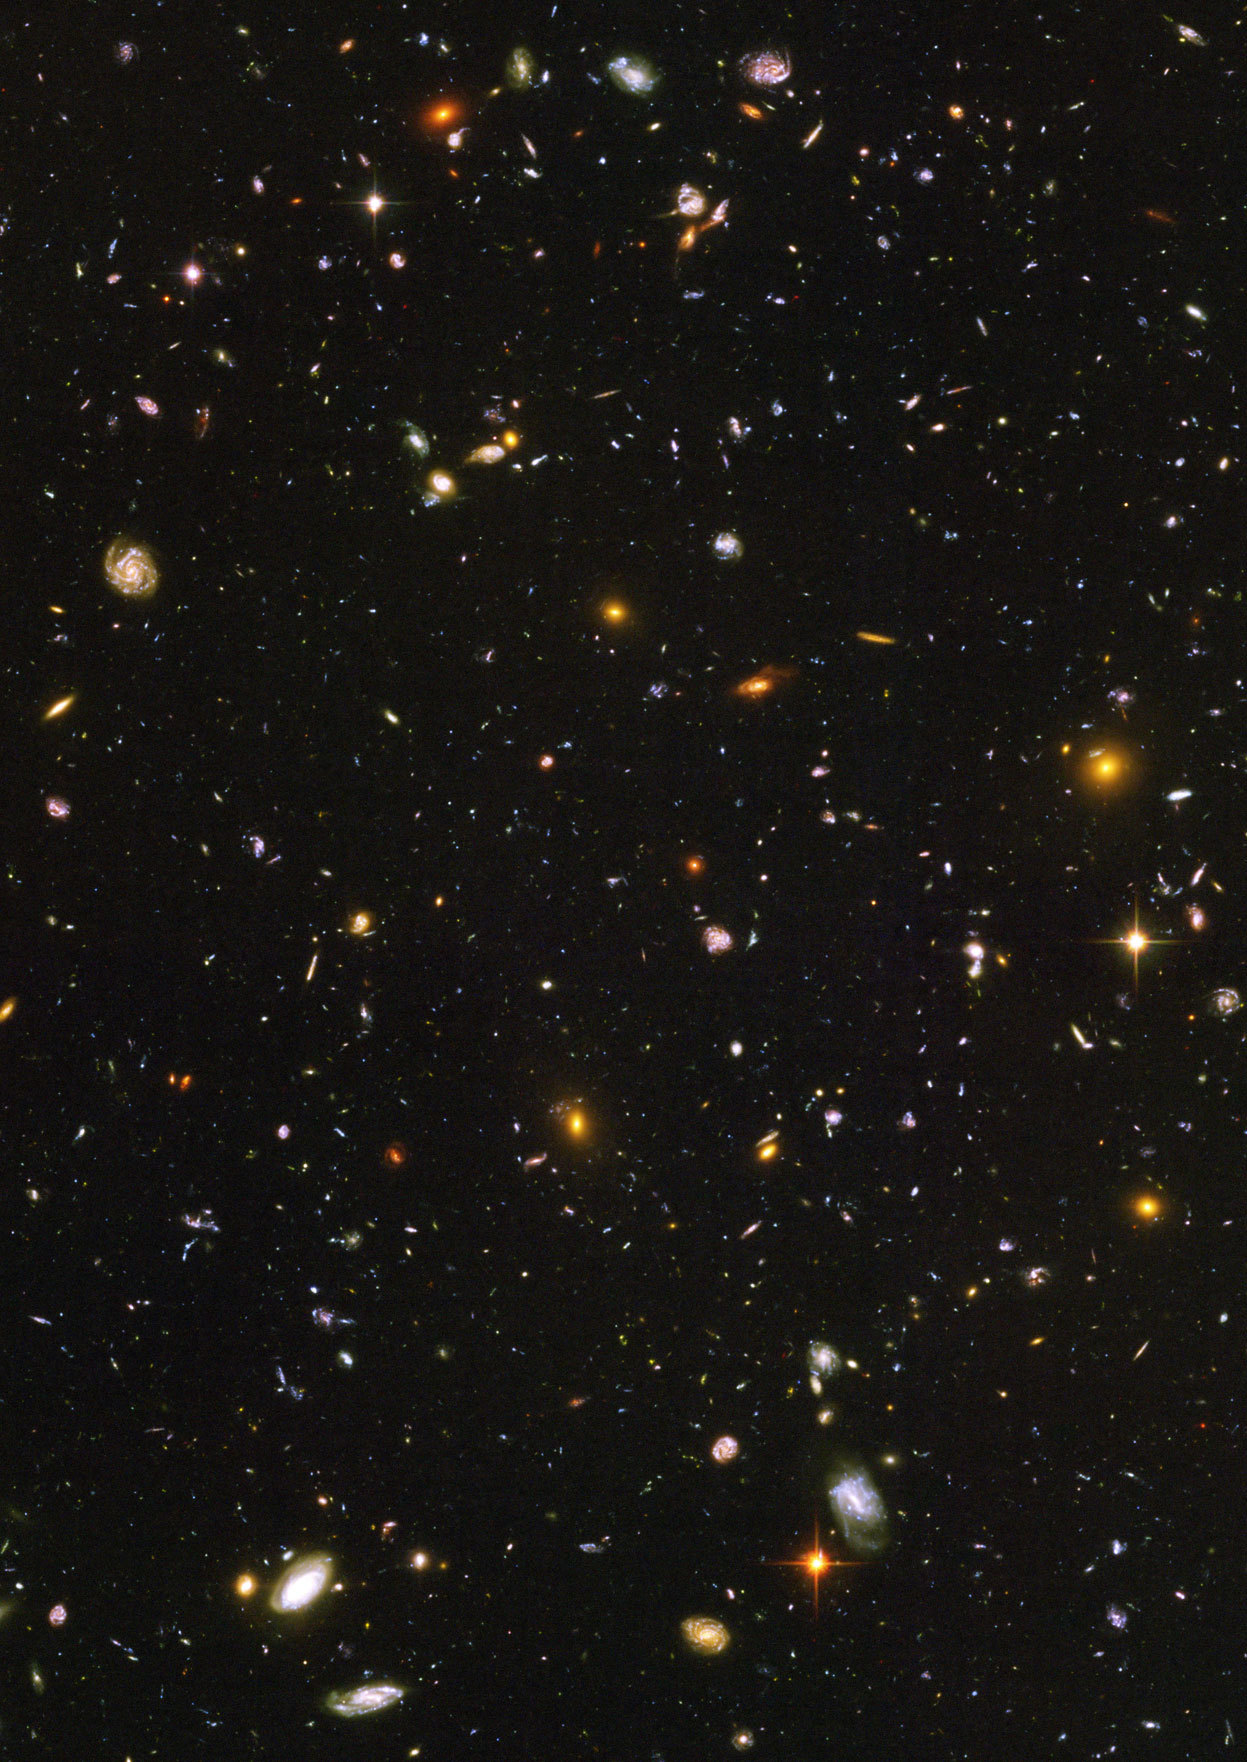 "Day 20 of the 2012 Hubble Space Telescope Advent Calendar, one of 25 photos (eventually). Galaxies, galaxies everywhere - as far as the NASA/ESA Hubble Space Telescope can see. This view of thousands of galaxies is the deepest visible-light image of the cosmos. part of what is called the Hubble Ultra Deep Field, this galaxy-studded view represents a ""deep"" core sample of the universe, cutting across billions of light-years. The snapshot includes galaxies of various ages, sizes, shapes, and colors. The smallest, reddest galaxies, about 100, may be among the most distant known, existing when the universe was just 800 million years old. The nearest galaxies - the larger, brighter, well-defined spirals and ellipticals - thrived about 1 billion years ago, when the cosmos was 13 billion years old. In vibrant contrast to the rich harvest of classic spiral and elliptical galaxies, there is a zoo of oddball galaxies littering the field. Some look like toothpicks; others like links on a bracelet. A few appear to be interacting. These oddball galaxies chronicle a period when the universe was younger and more chaotic. Order and structure were just beginning to emerge. The Ultra Deep Field observations, taken by the Advanced Camera for Surveys, represent a narrow, deep view of the cosmos. In ground-based photographs, the patch of sky in which the galaxies reside (just one-tenth the diameter of the full Moon) is largely empty. Located in the constellation Fornax, the region is so empty that only a handful of stars within the Milky Way galaxy can be seen in the image. The image required 800 exposures taken over the course of 400 Hubble orbits around Earth. The total amount of exposure time was 11.3 days, taken between Sept. 24, 2003 and Jan. 16, 2004. (NASA, ESA, and S. Beckwith (STScI) and the HUDF Team)"